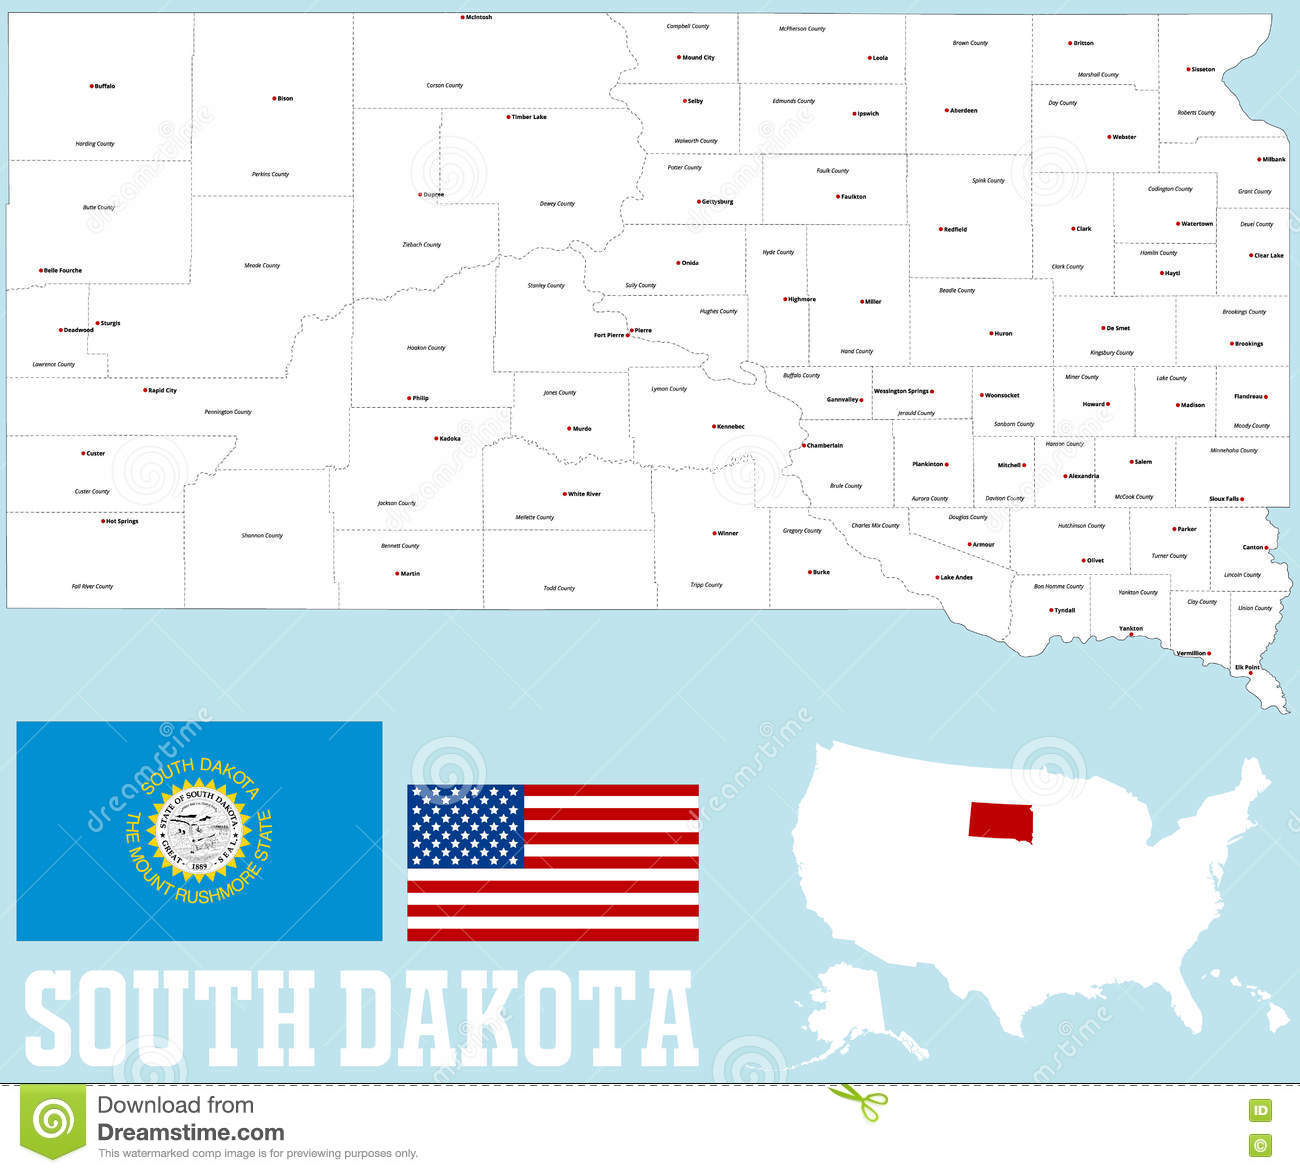 Picture of: South Dakota County Map Stock Vector Illustration Of Cities 78880254